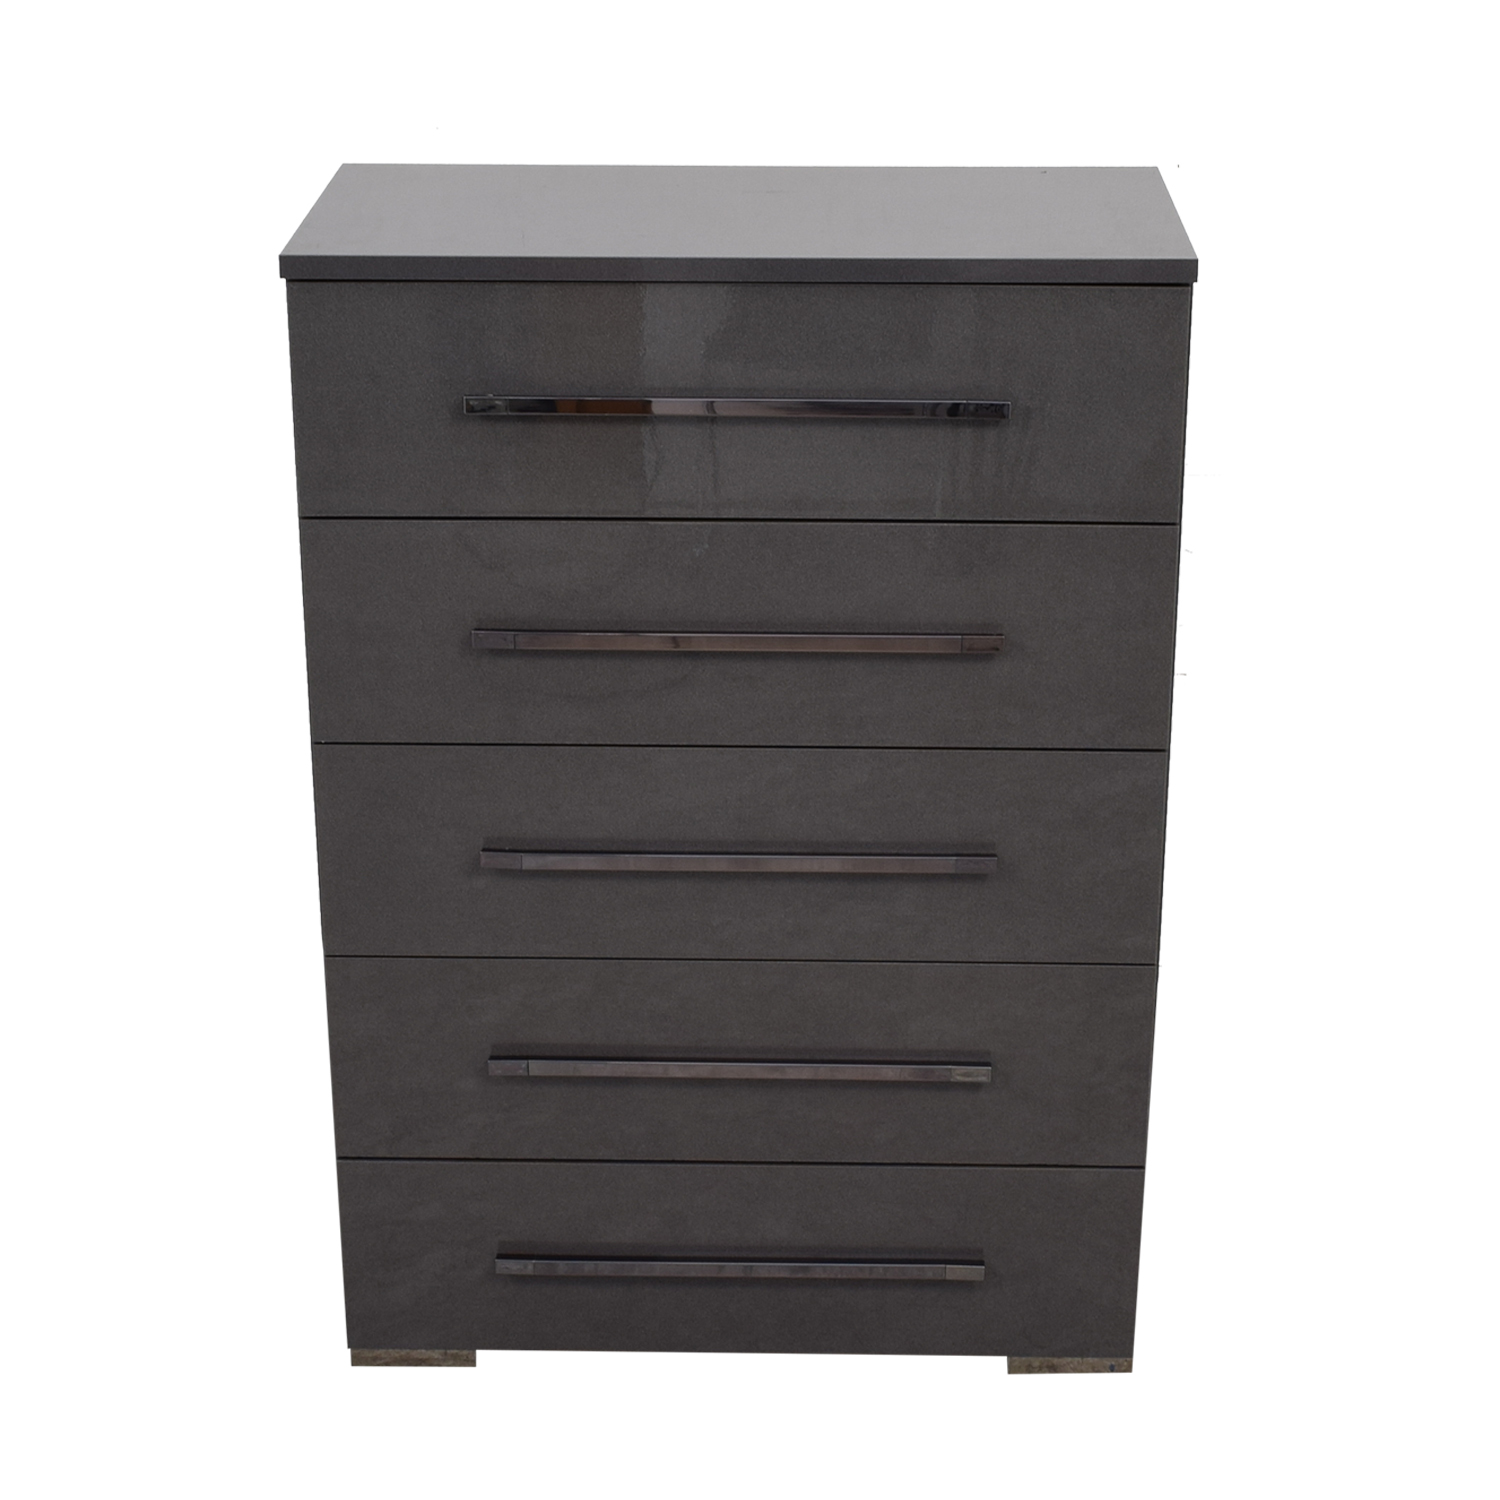 Bob's Furniture Bob's Furniture Five-Drawer Tall Dresser coupon